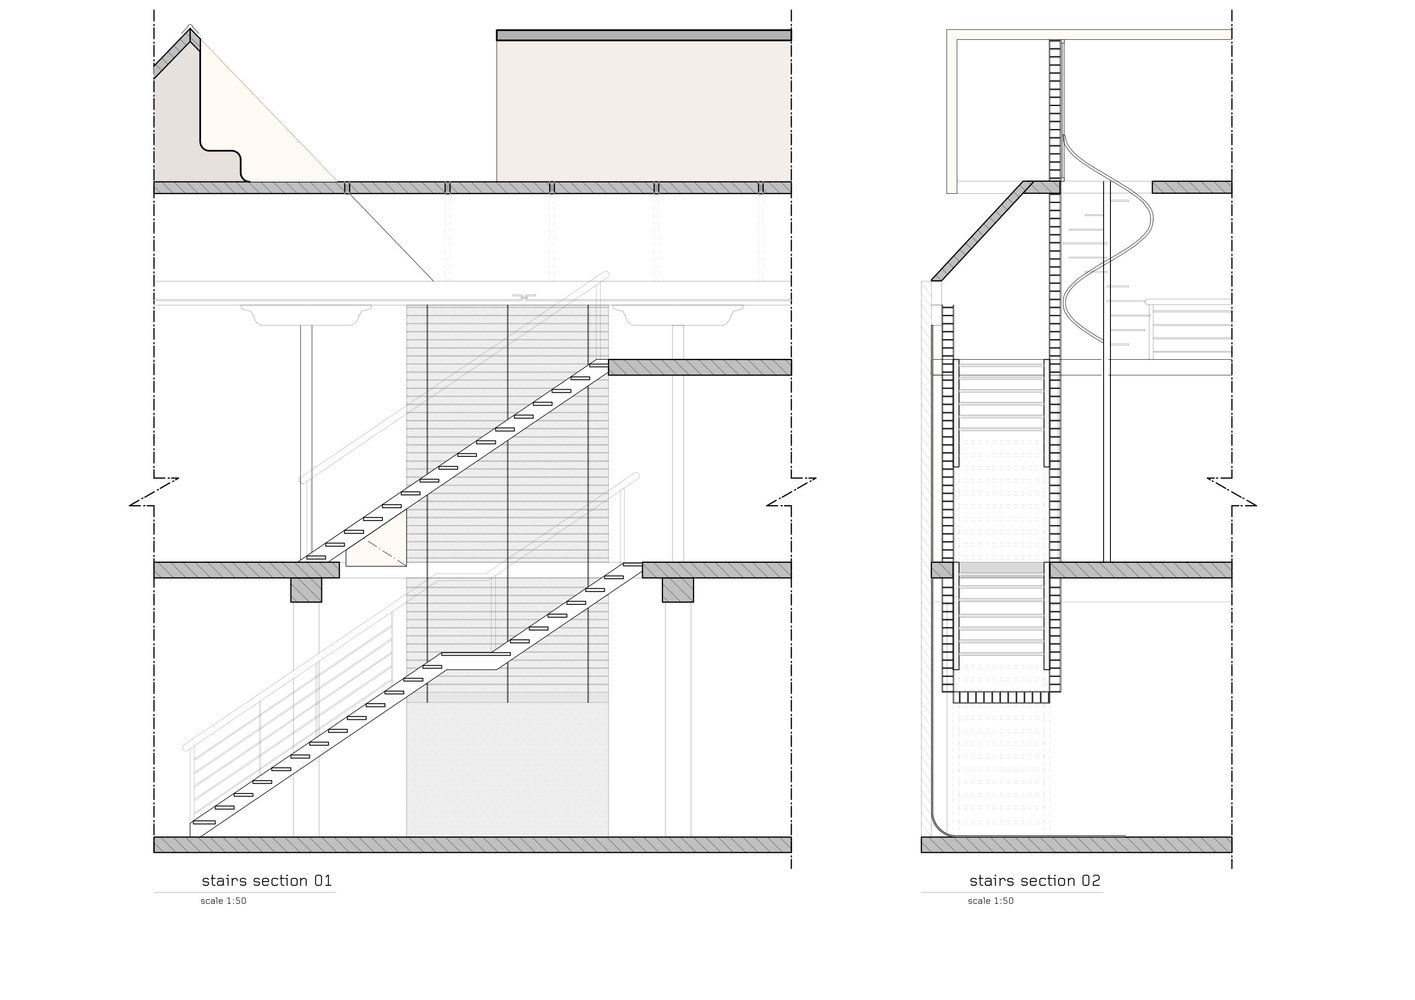 medium resolution of butler house andrew maynard architects stair section